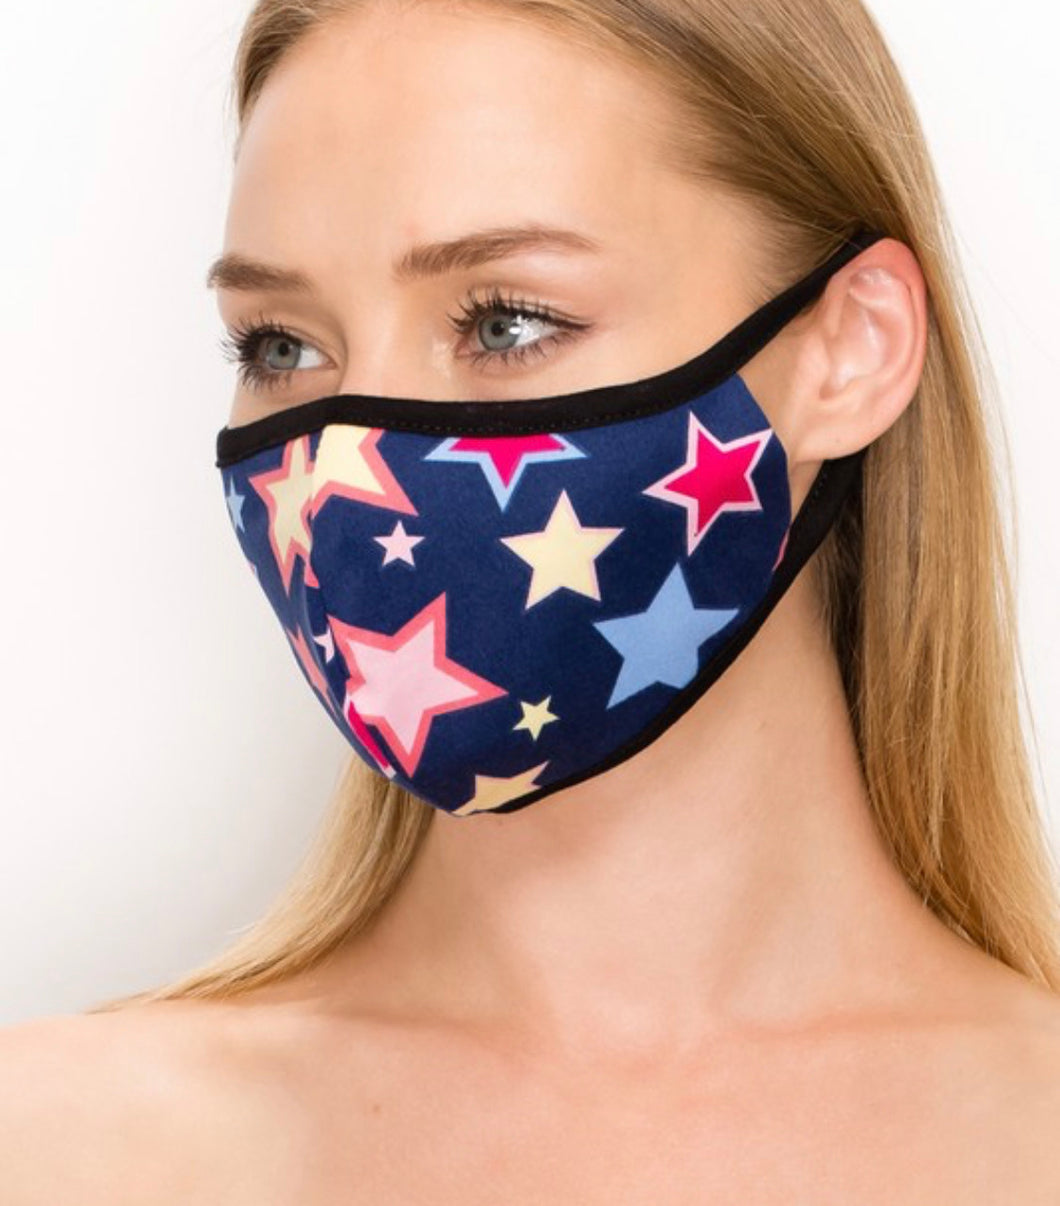 Multi Colored Star Mask